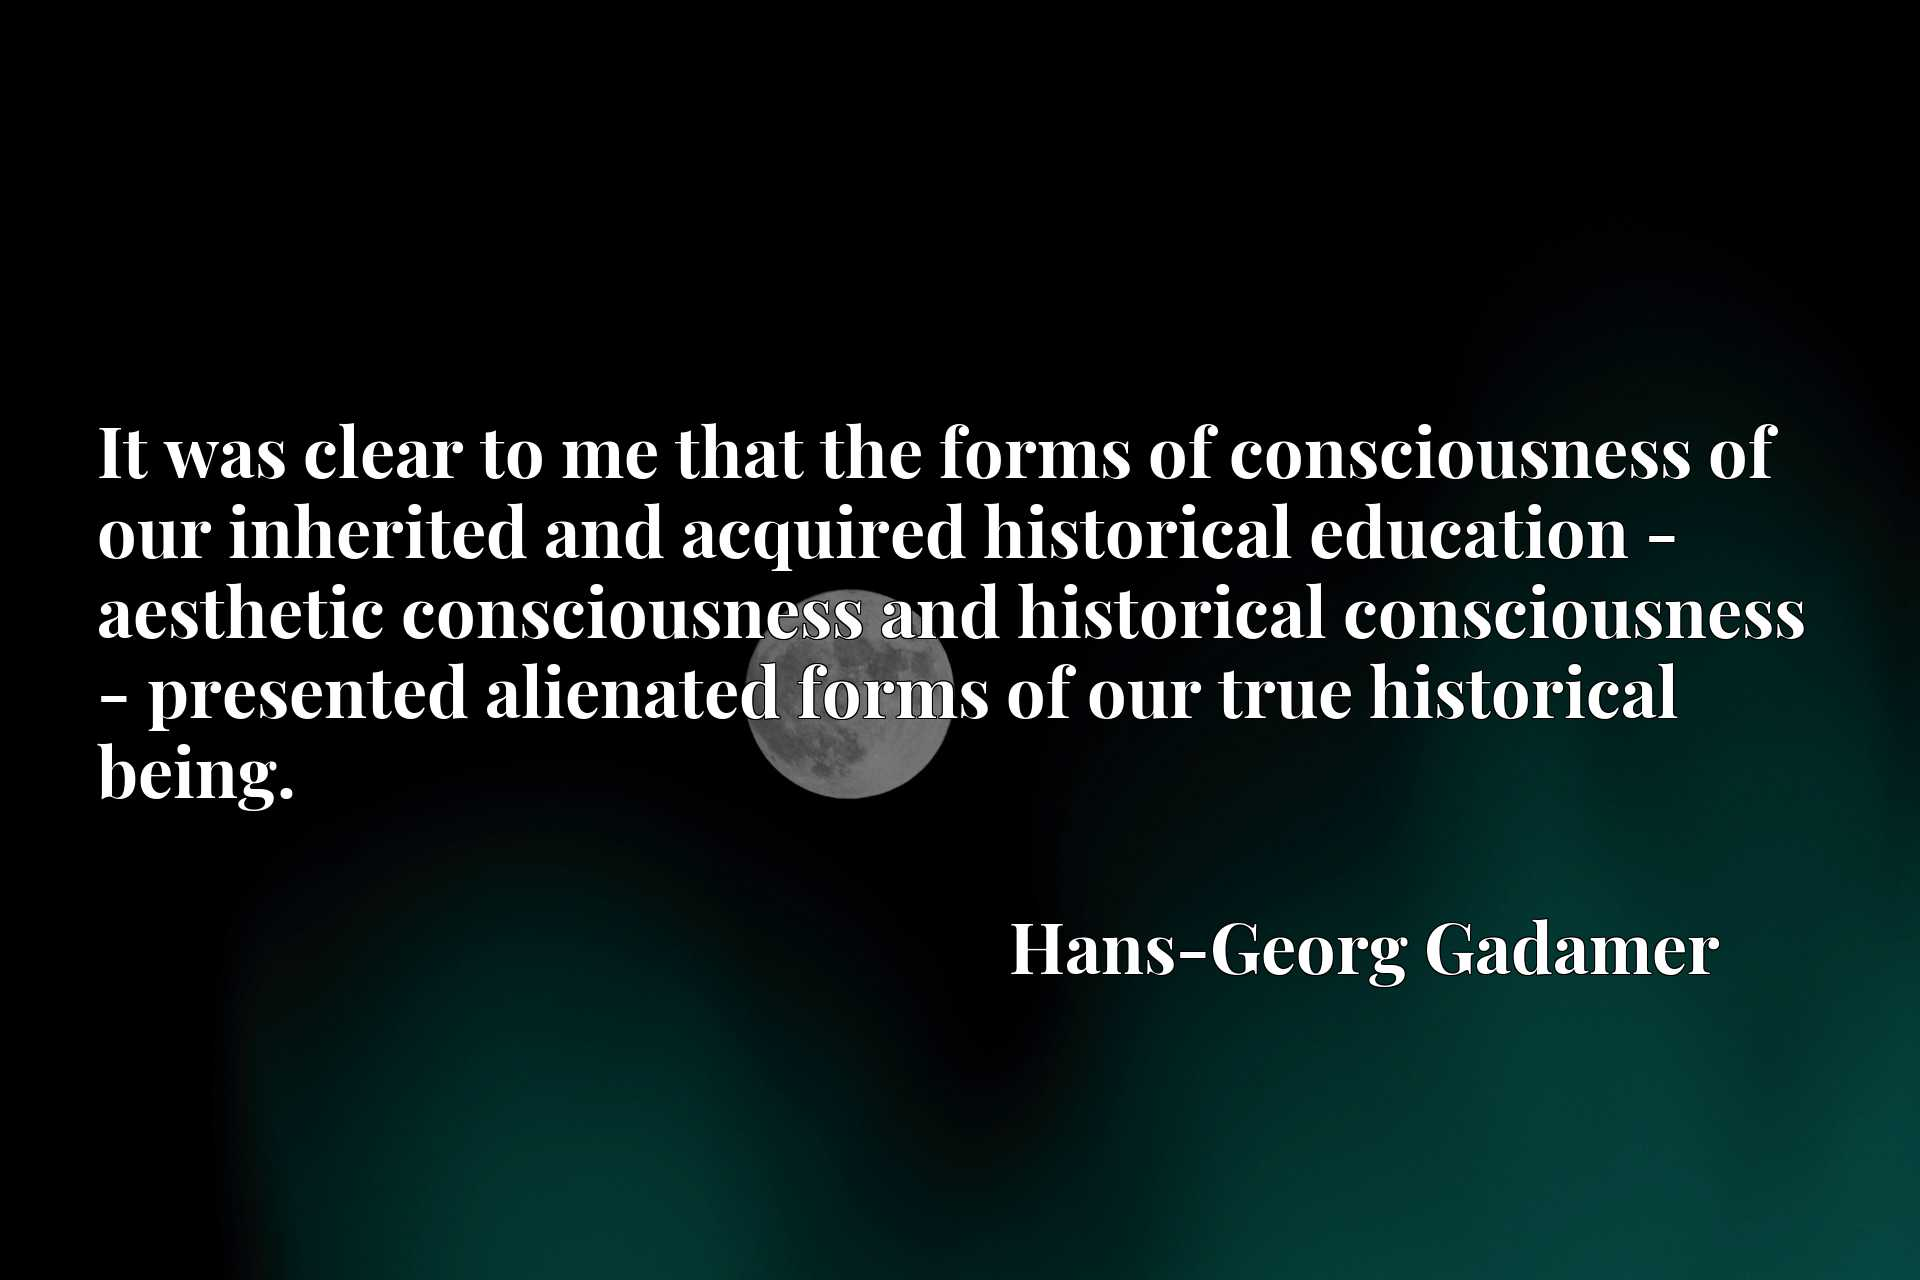 It was clear to me that the forms of consciousness of our inherited and acquired historical education - aesthetic consciousness and historical consciousness - presented alienated forms of our true historical being.